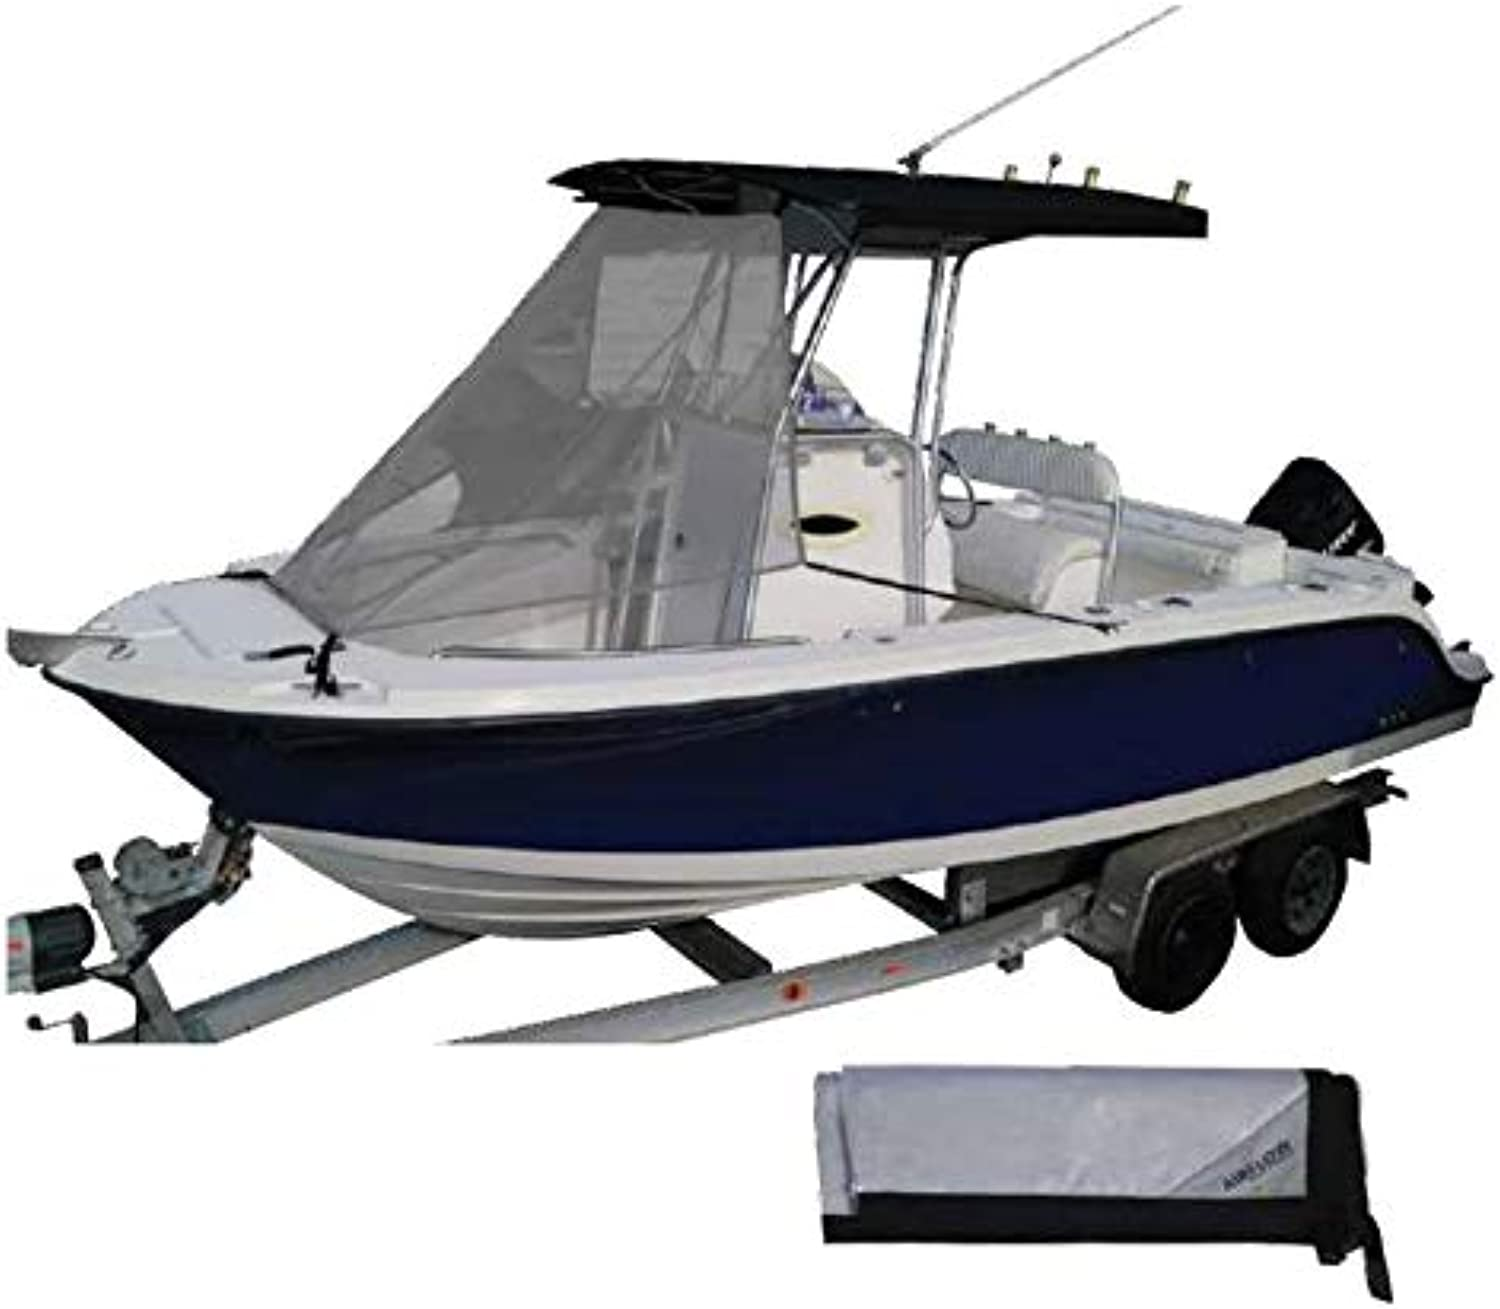 Oceansouth Boat Airflow TTop Cabin Boat Extension Bow Shade 4 Sizes